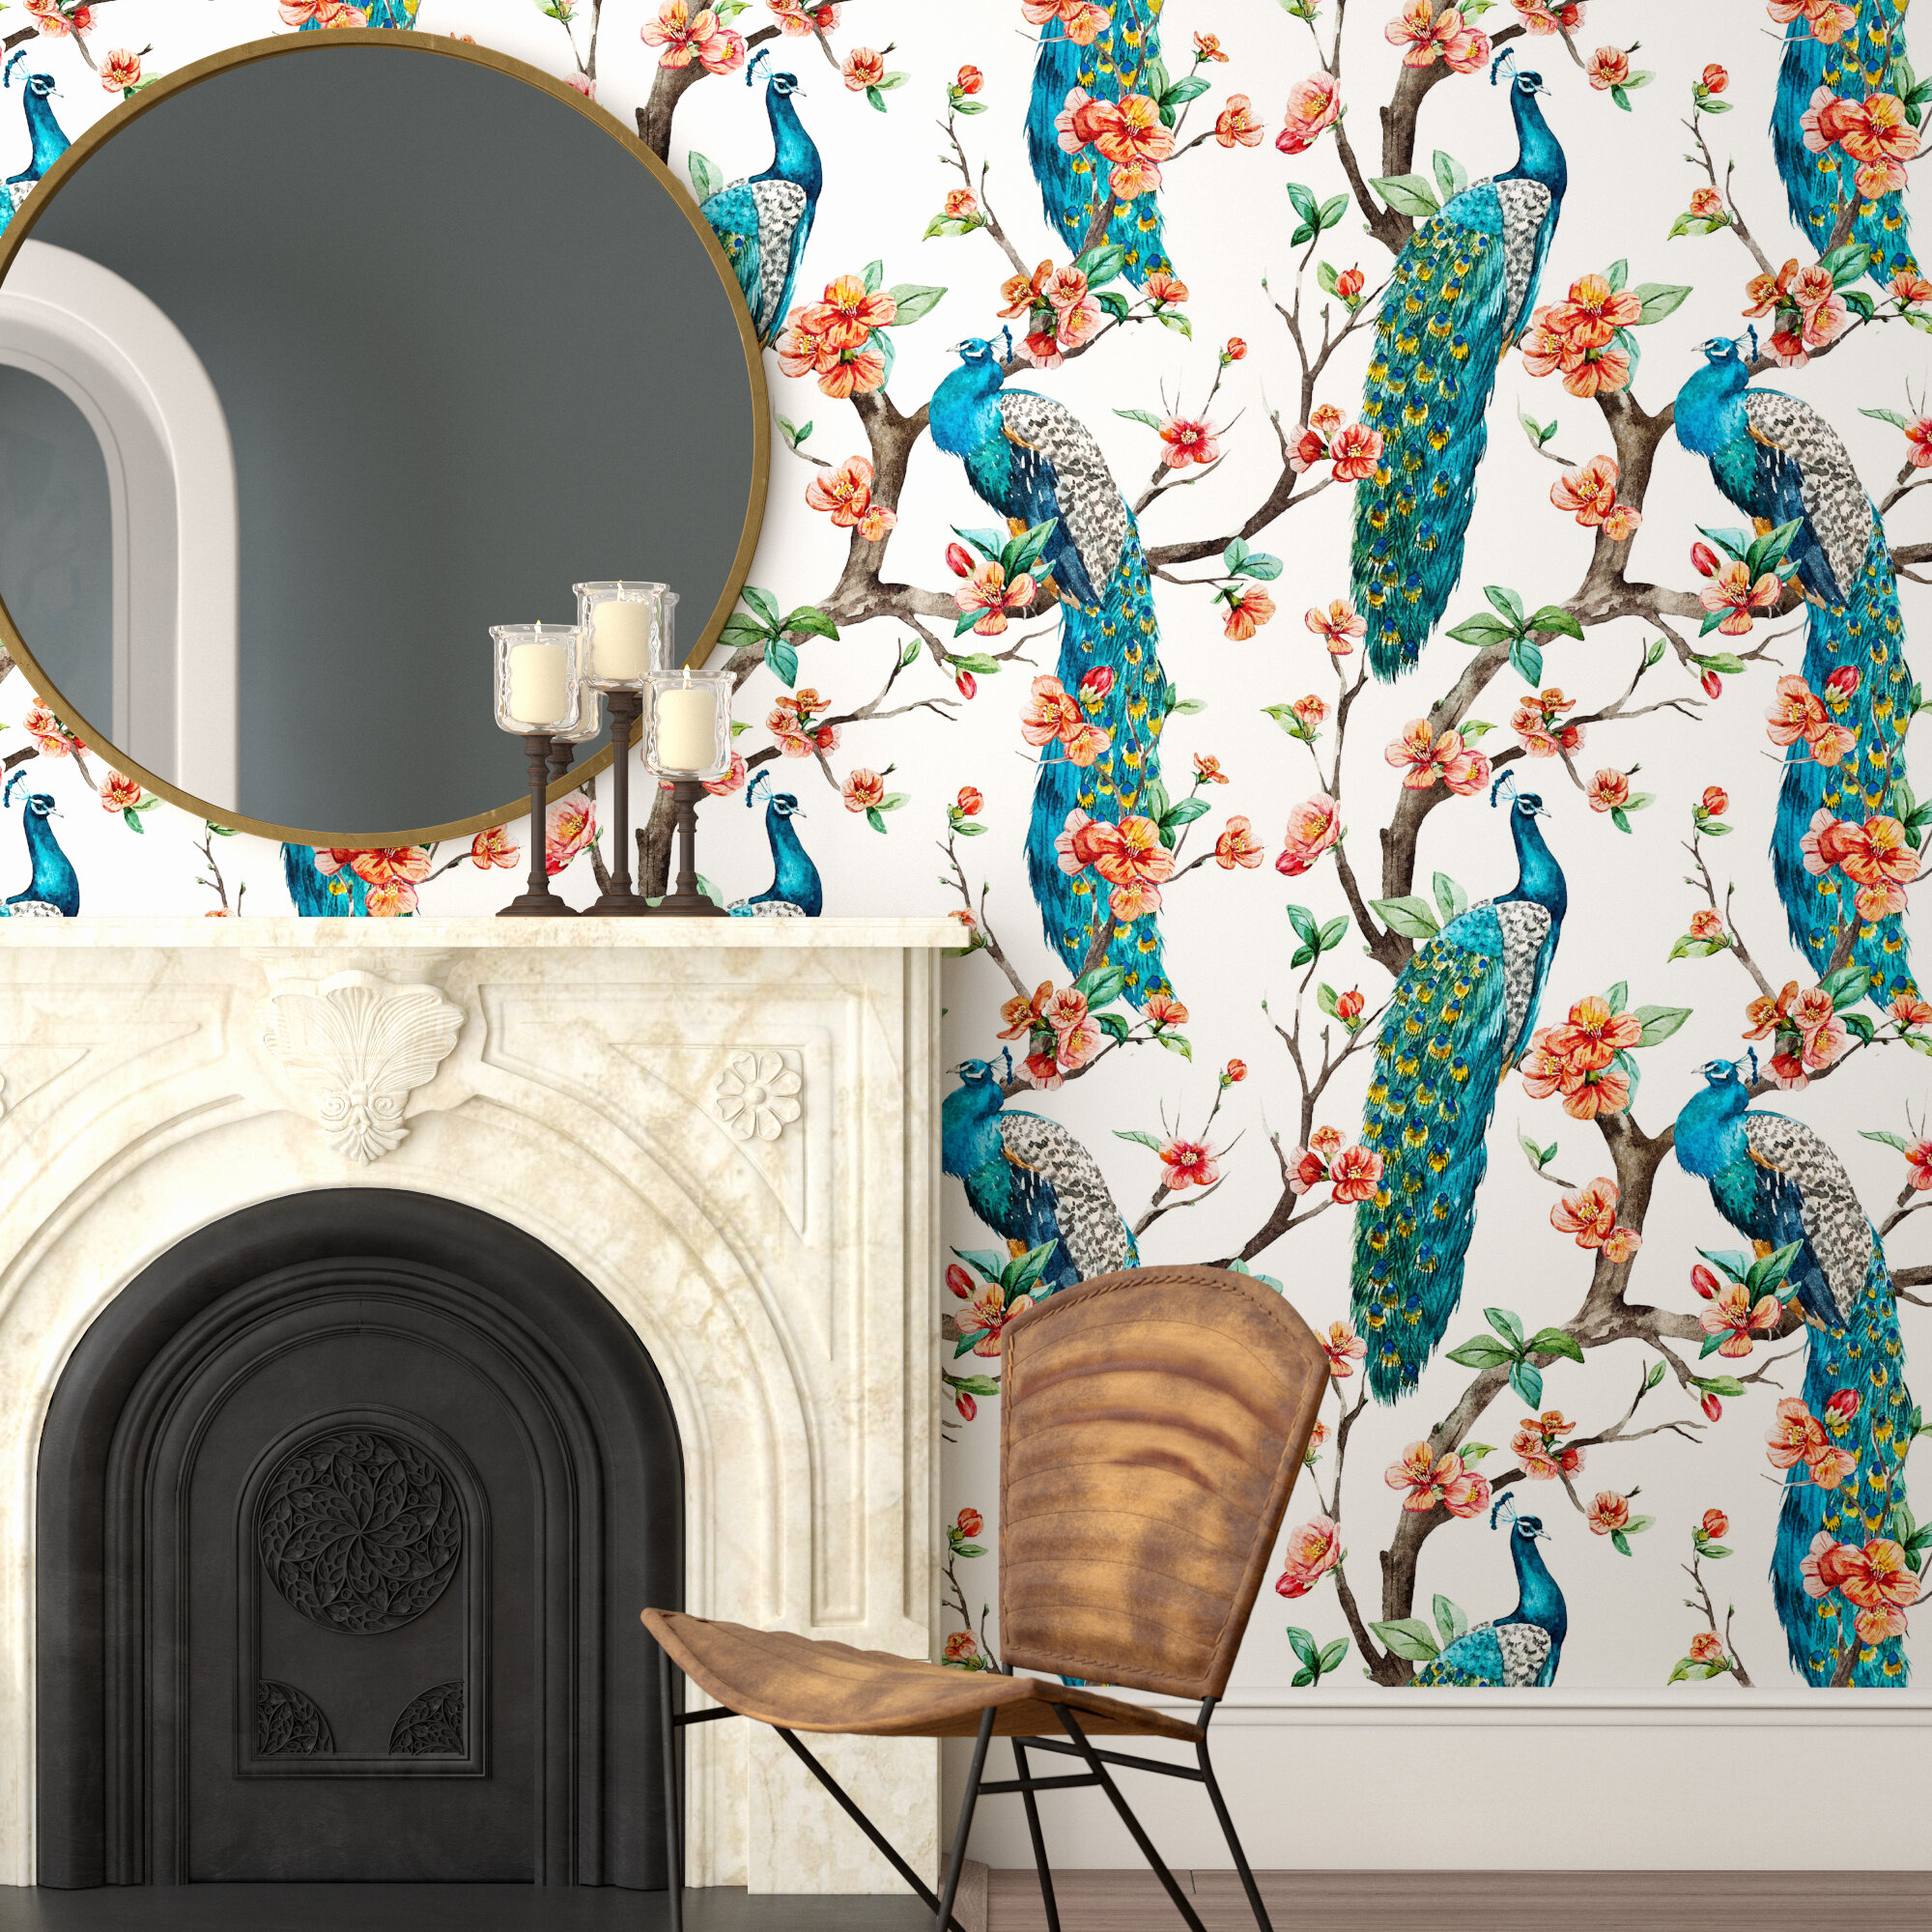 Bungalow Rose Longbridge Removable Peacock 8 33 L X 25 W Peel And Stick Wallpaper Roll Wayfair